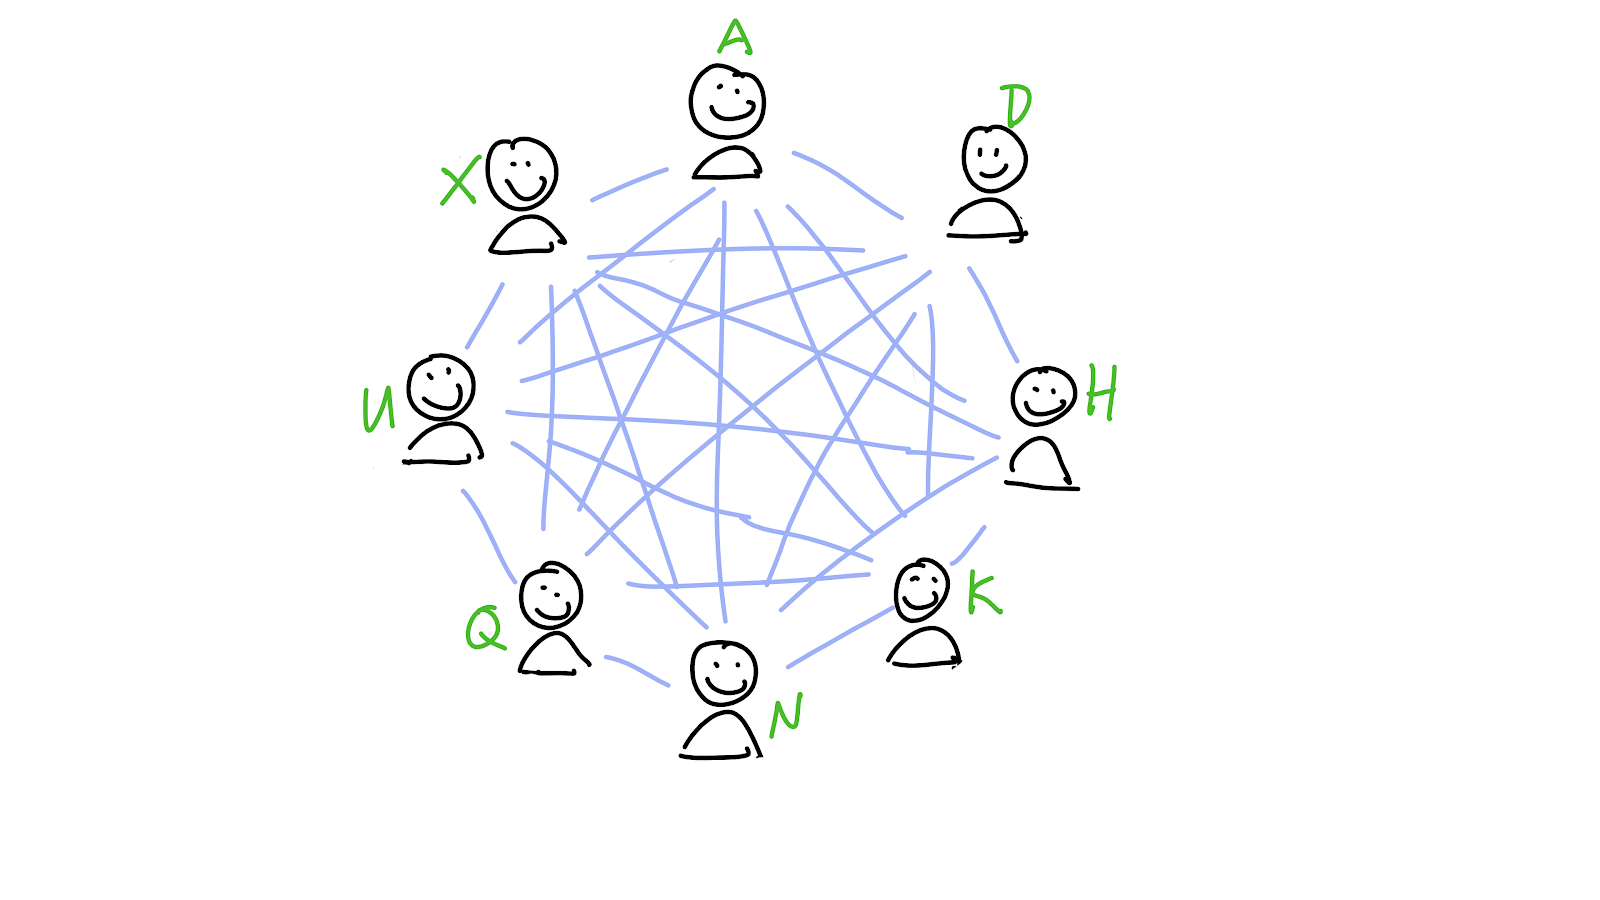 Eight peers, each with a key themselves: A, D, H, K, N, Q, U, and X.